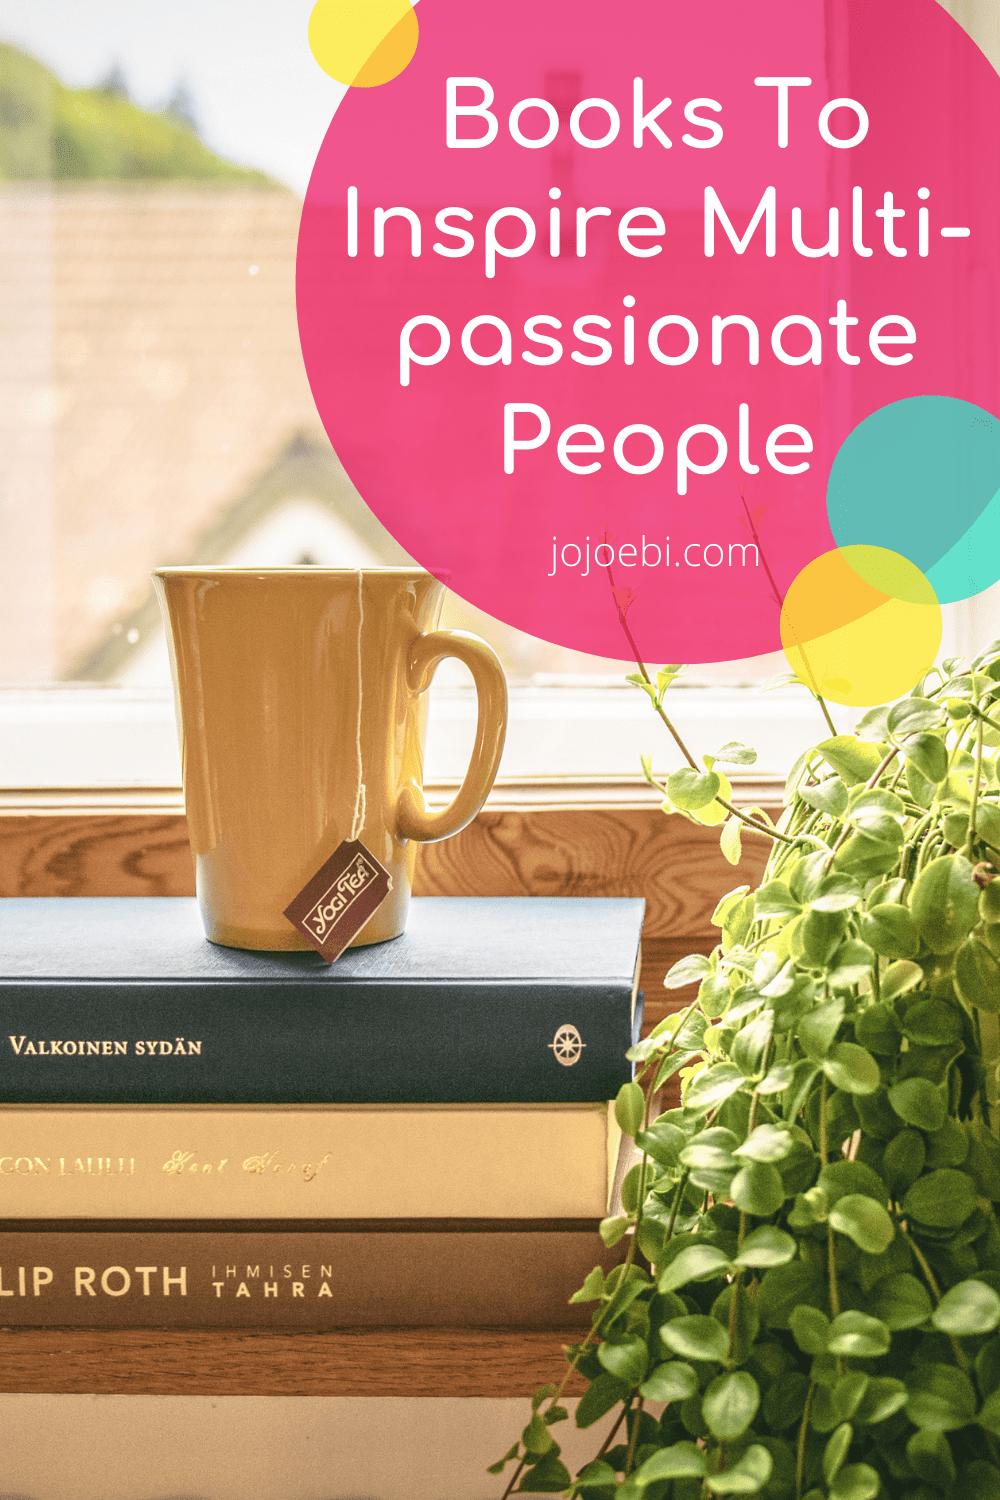 Books To Inspire Multi-passionate People pin 3